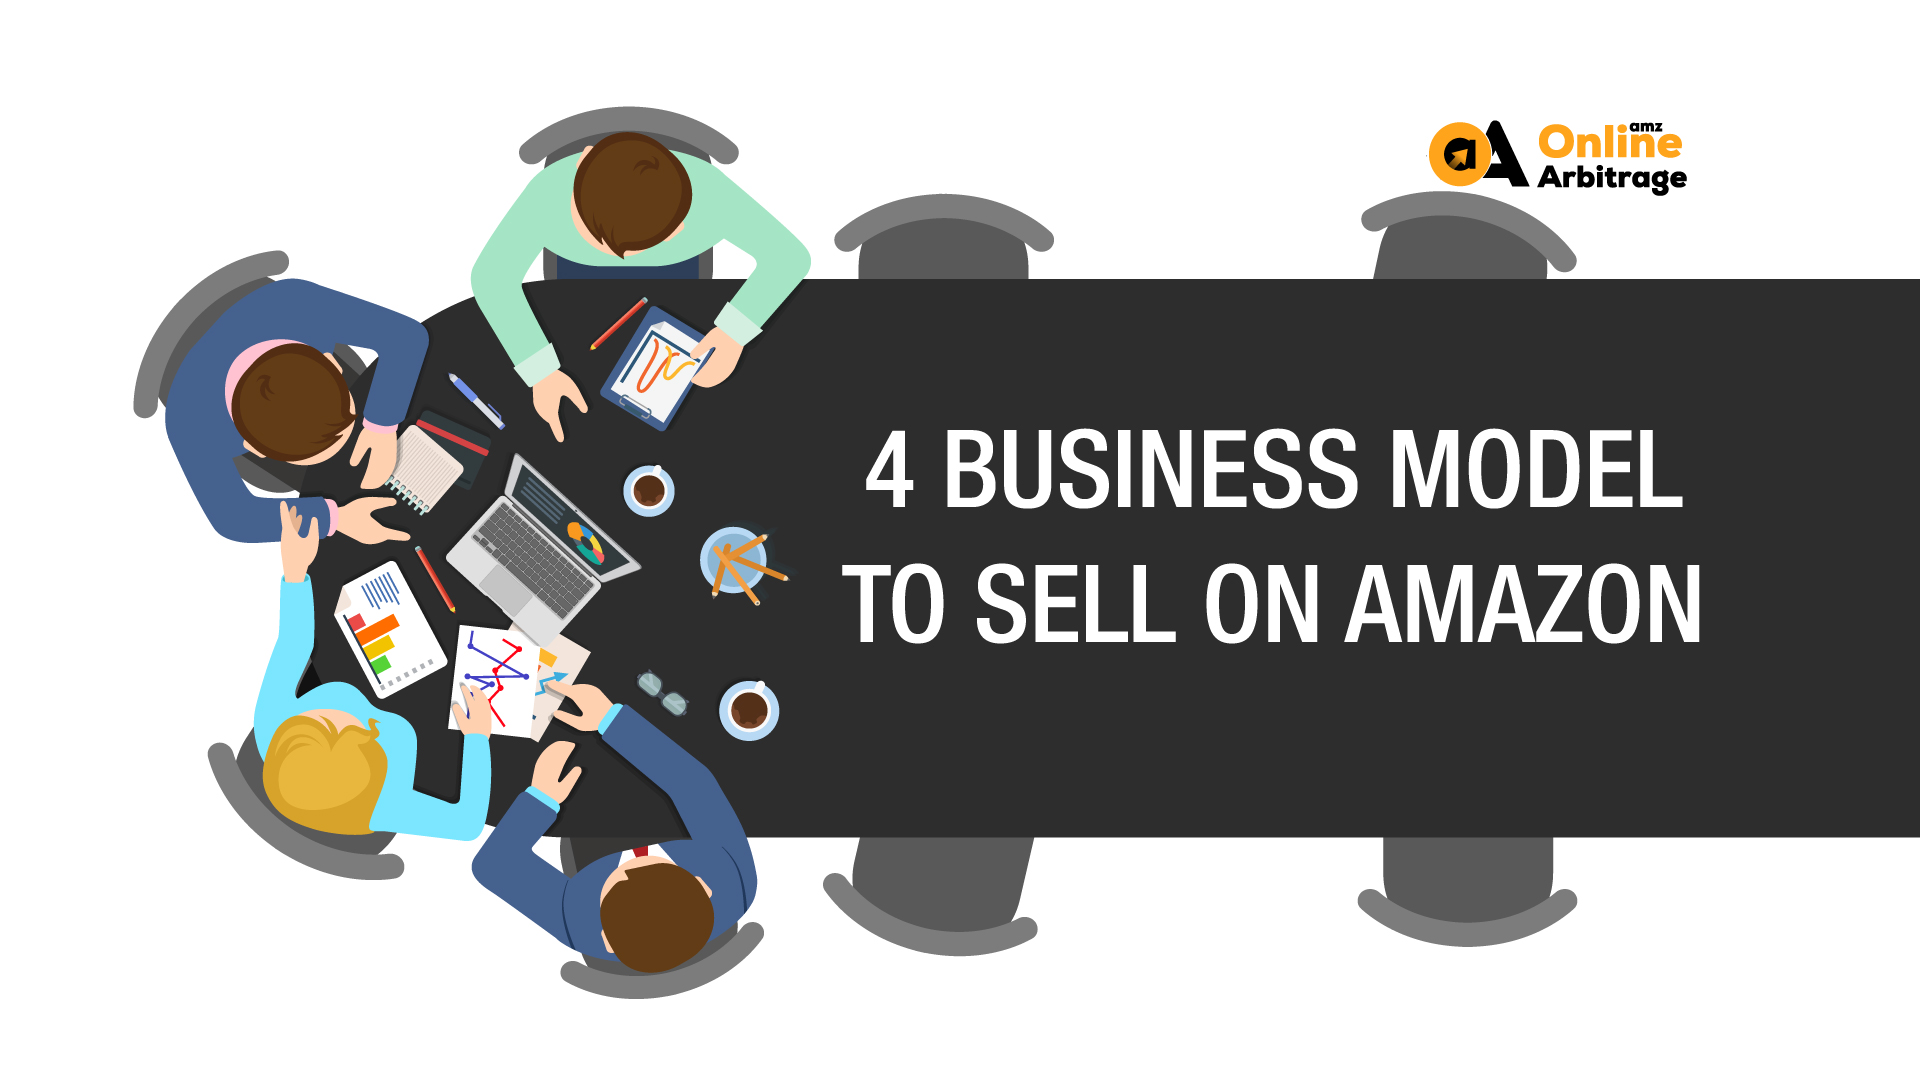 4 BUSINESS MODEL TO SELL ON AMAZON